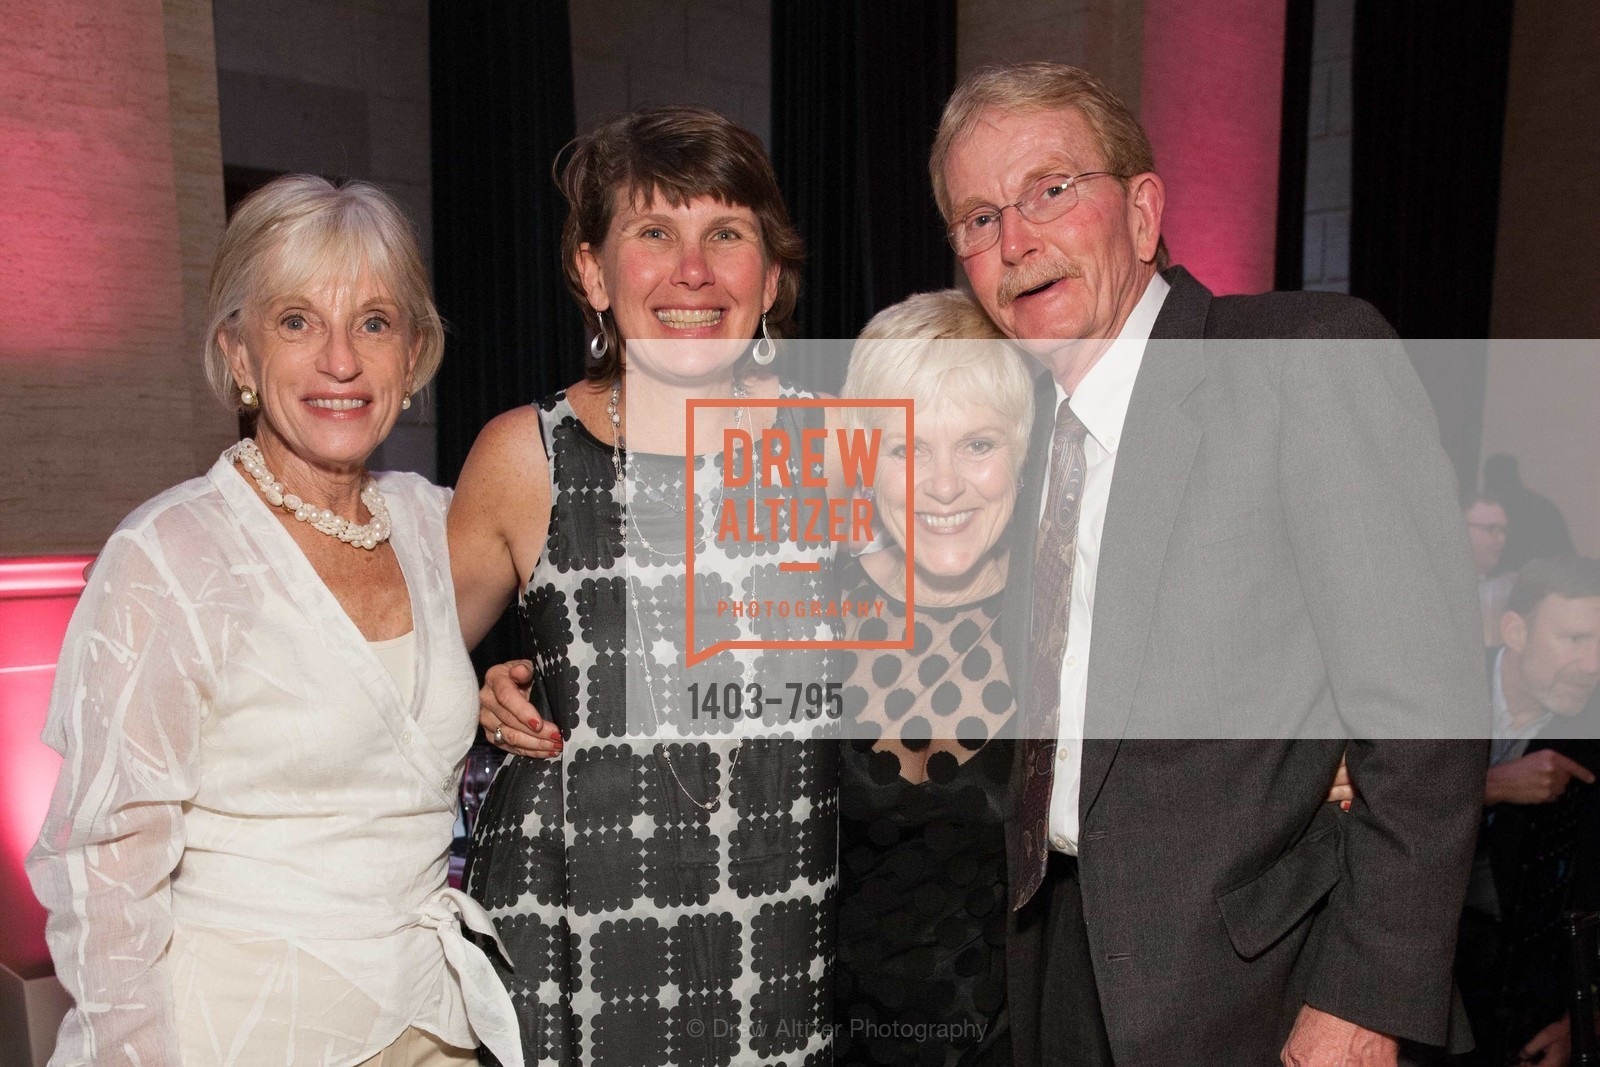 Joan Daoro, Erica Kisch, Jan Erion, Ken Bartlett, COMPASS FAMILY SERVICES Annual Spring Benefit:  Every Family Needs A Home, US, April 23rd, 2015,Drew Altizer, Drew Altizer Photography, full-service agency, private events, San Francisco photographer, photographer california